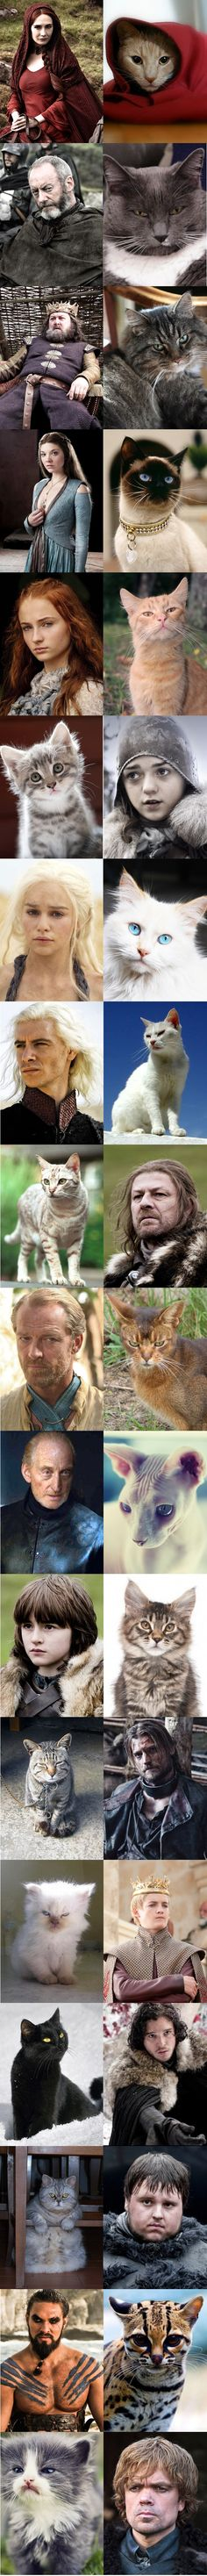 Game of Thrones... Now with Cats!  This is an absolute treasure! Sooo funny, some of the similarities are uncanny! =^_^=